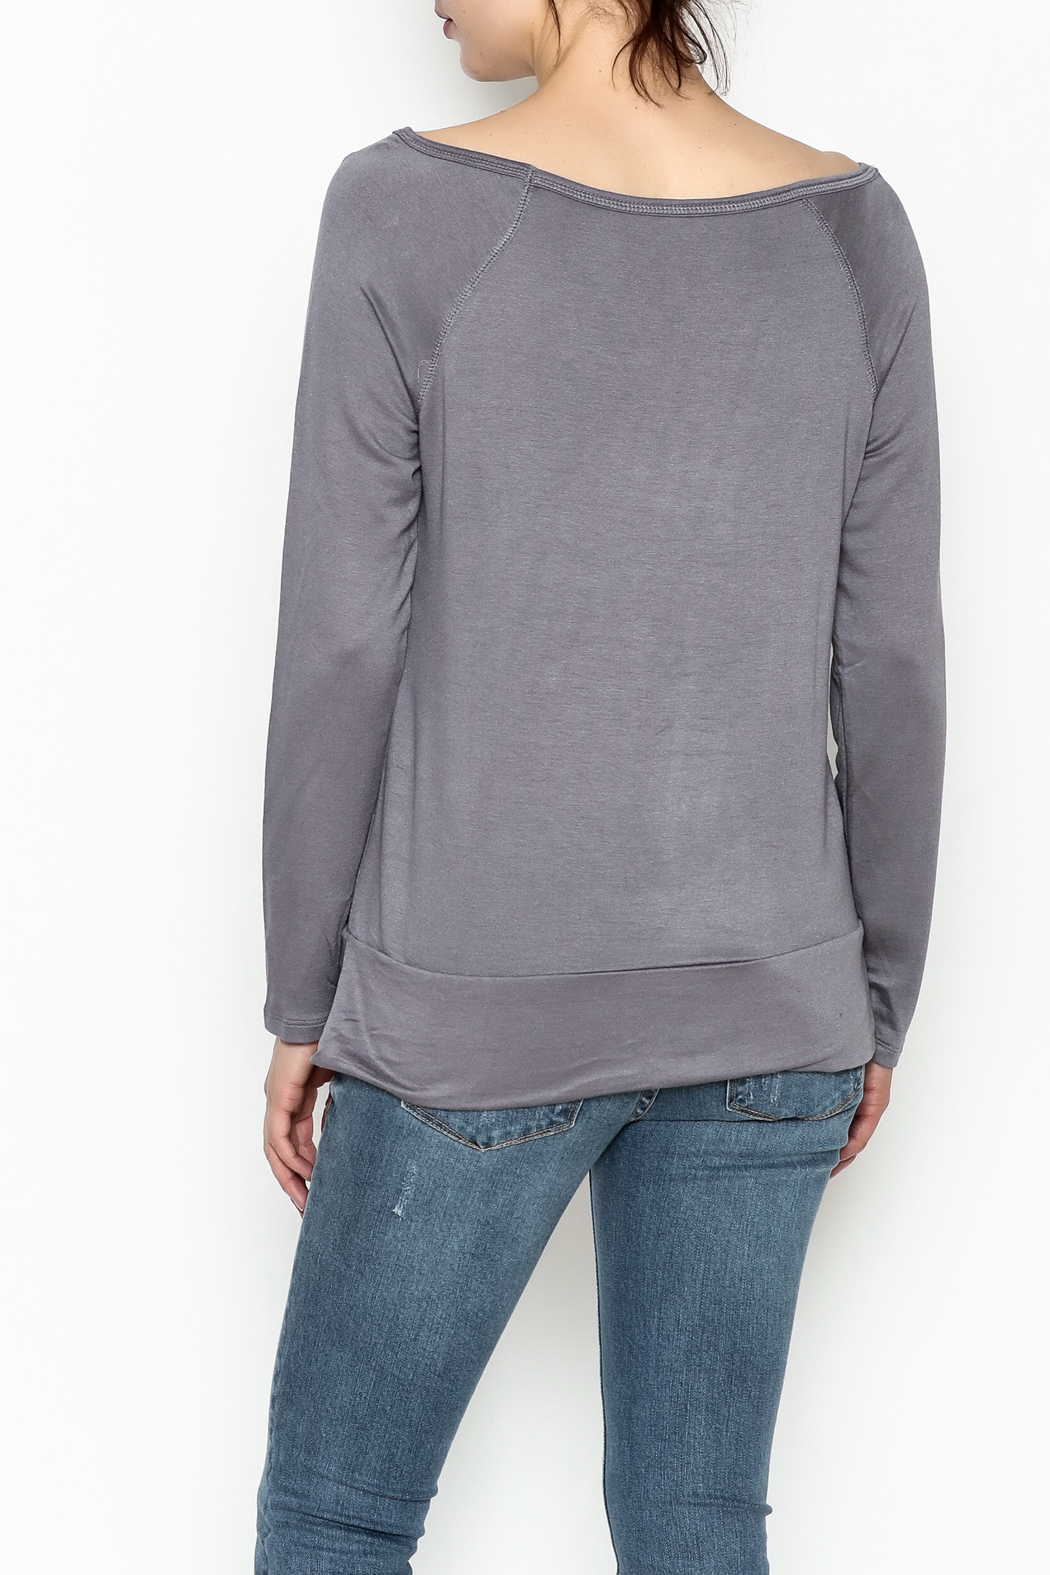 Tresics Long Sleeve Top - Back Cropped Image